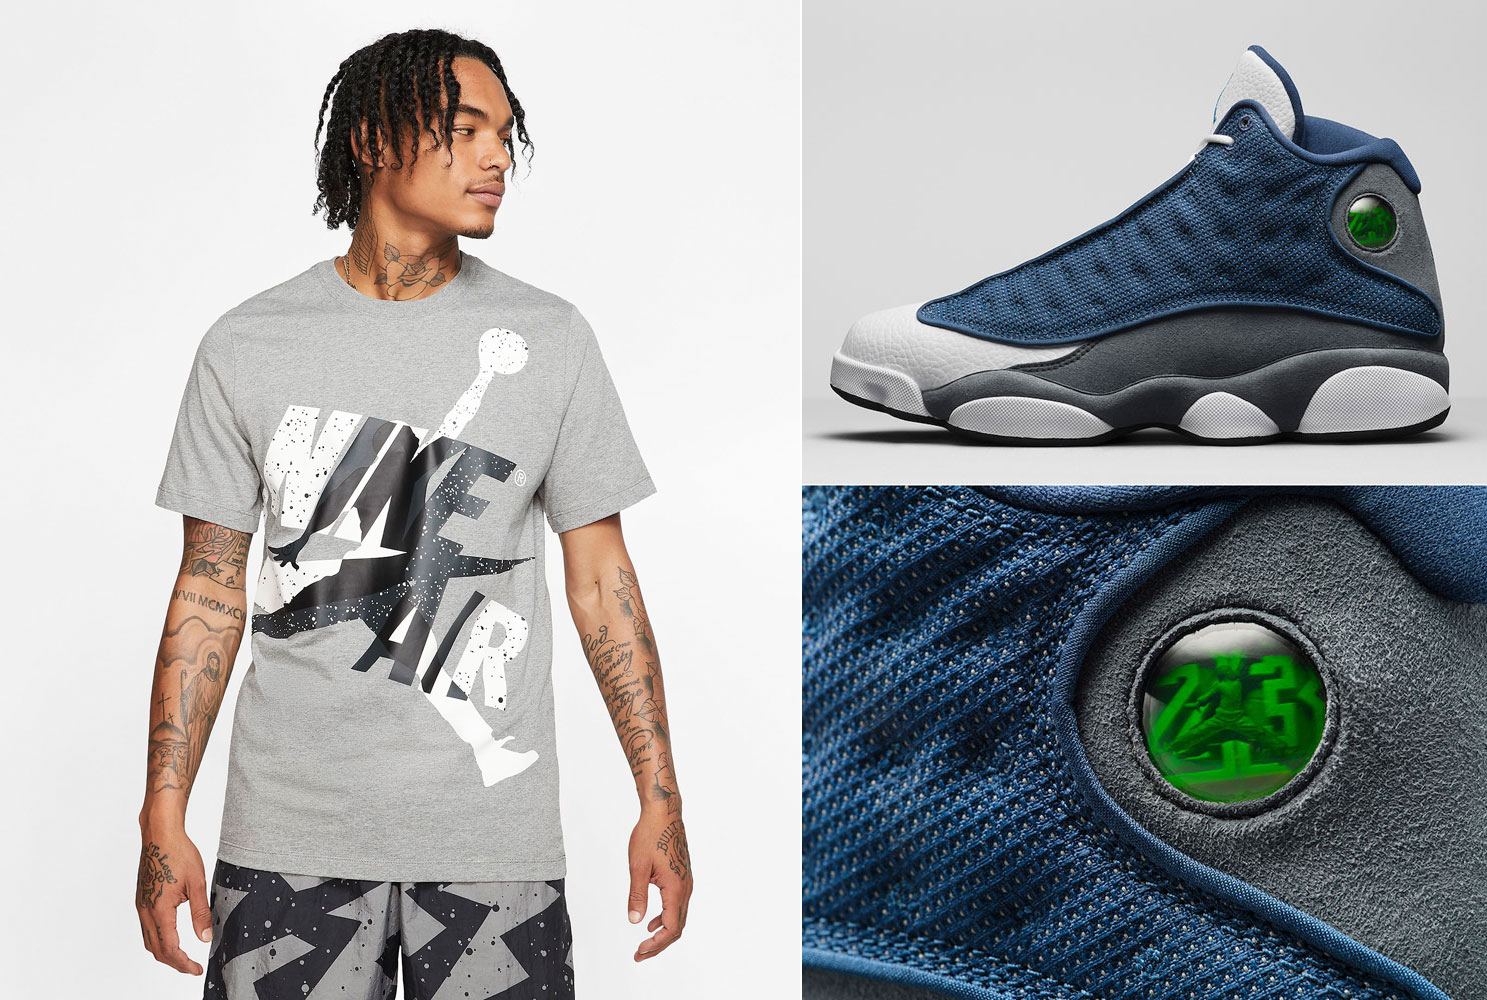 air-jordan-13-flint-matching-outfit-8